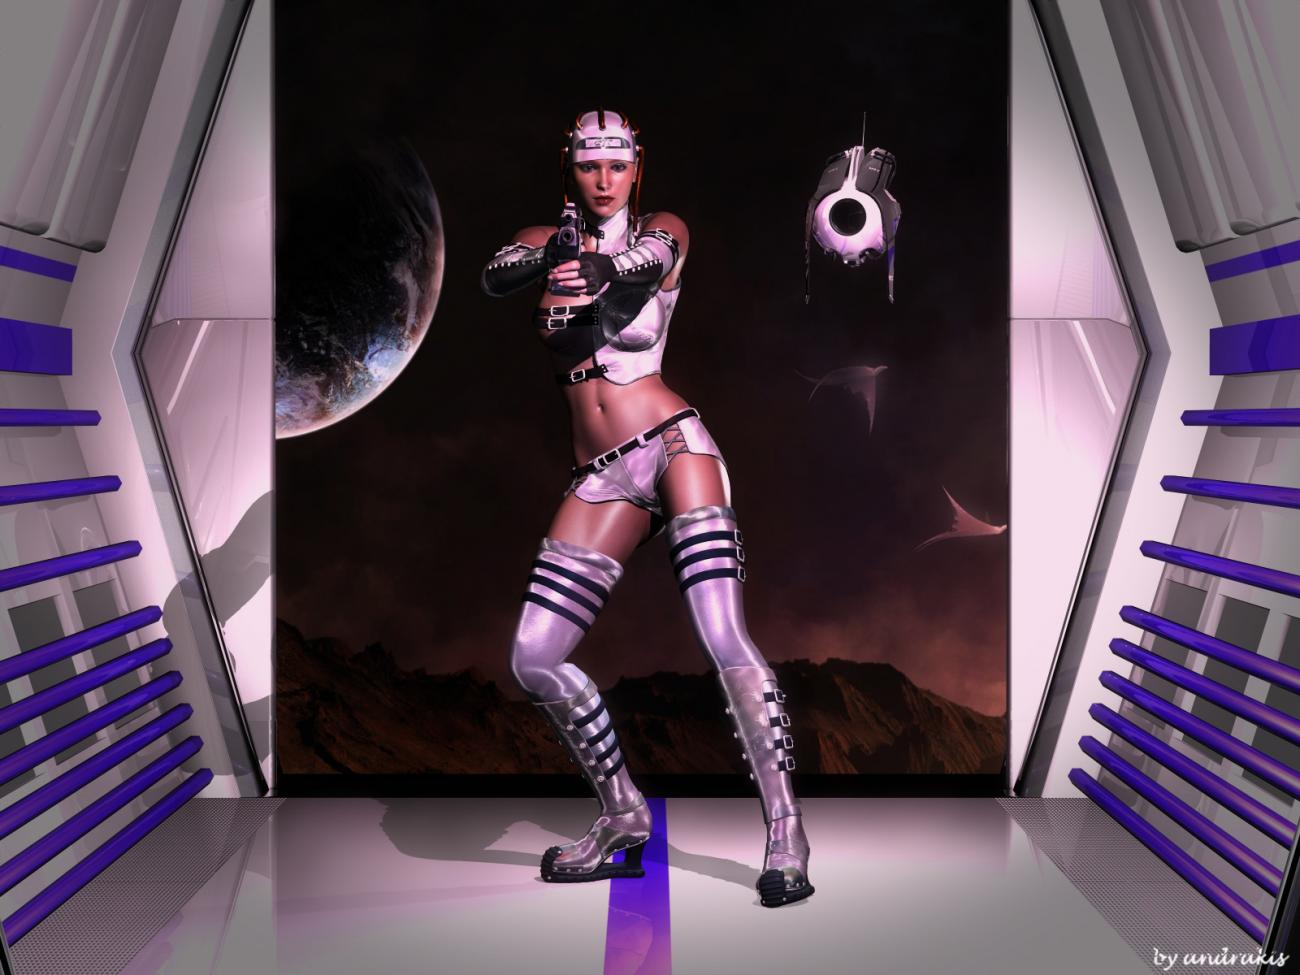 SciFi by andrakis